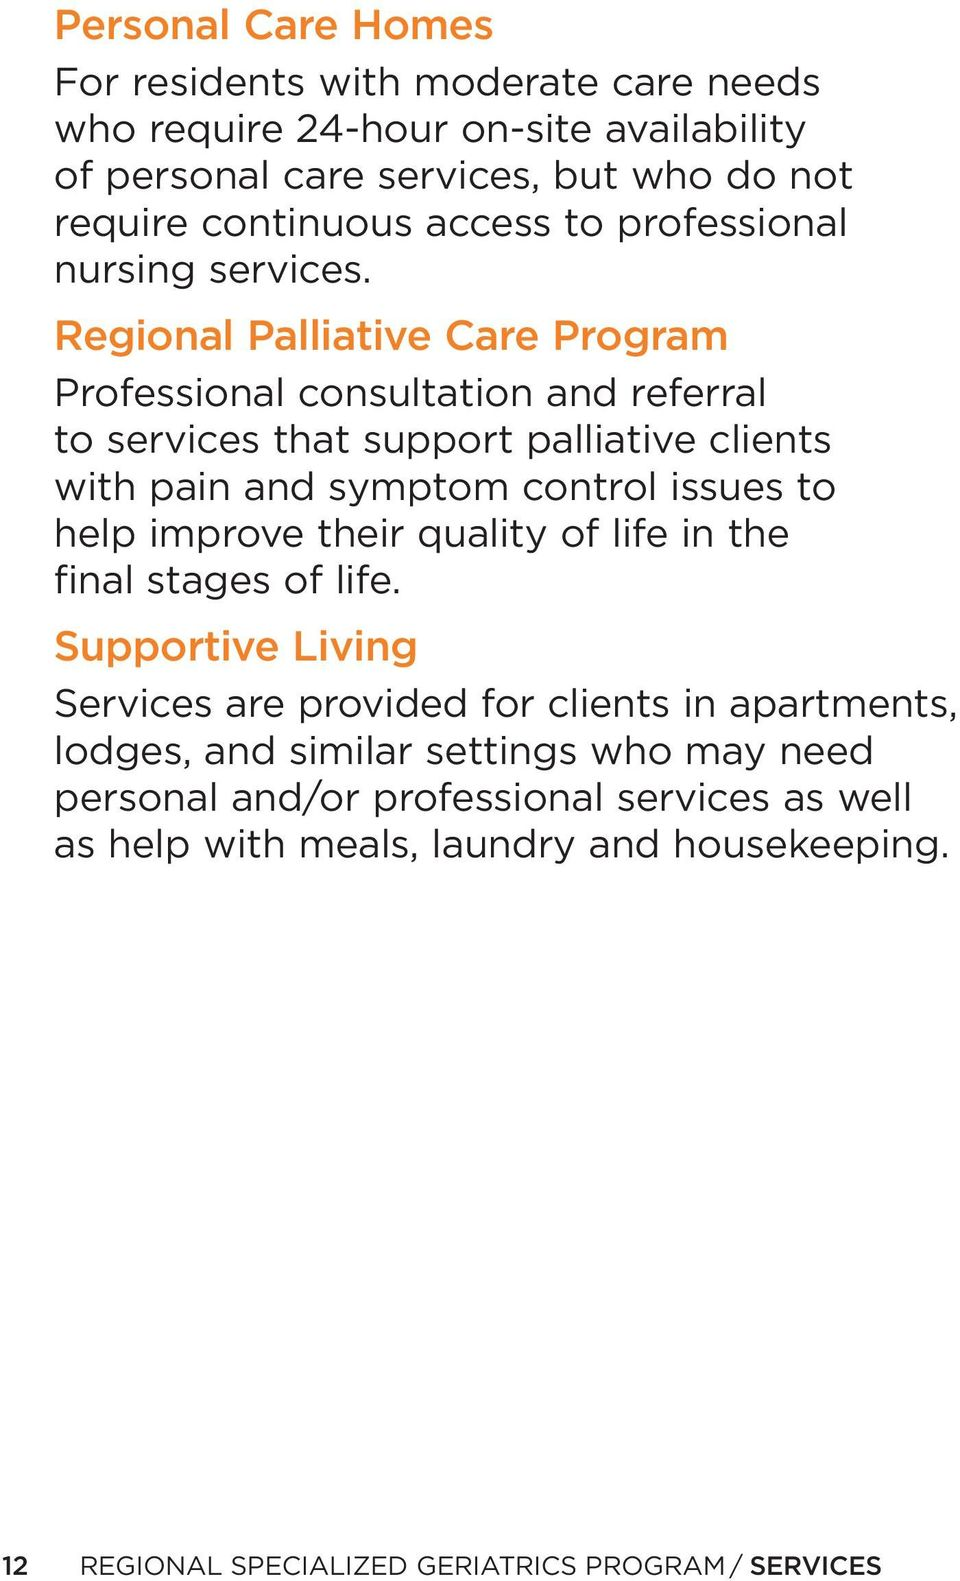 Regional Palliative Care Program Professional consultation and referral to services that support palliative clients with pain and symptom control issues to help improve